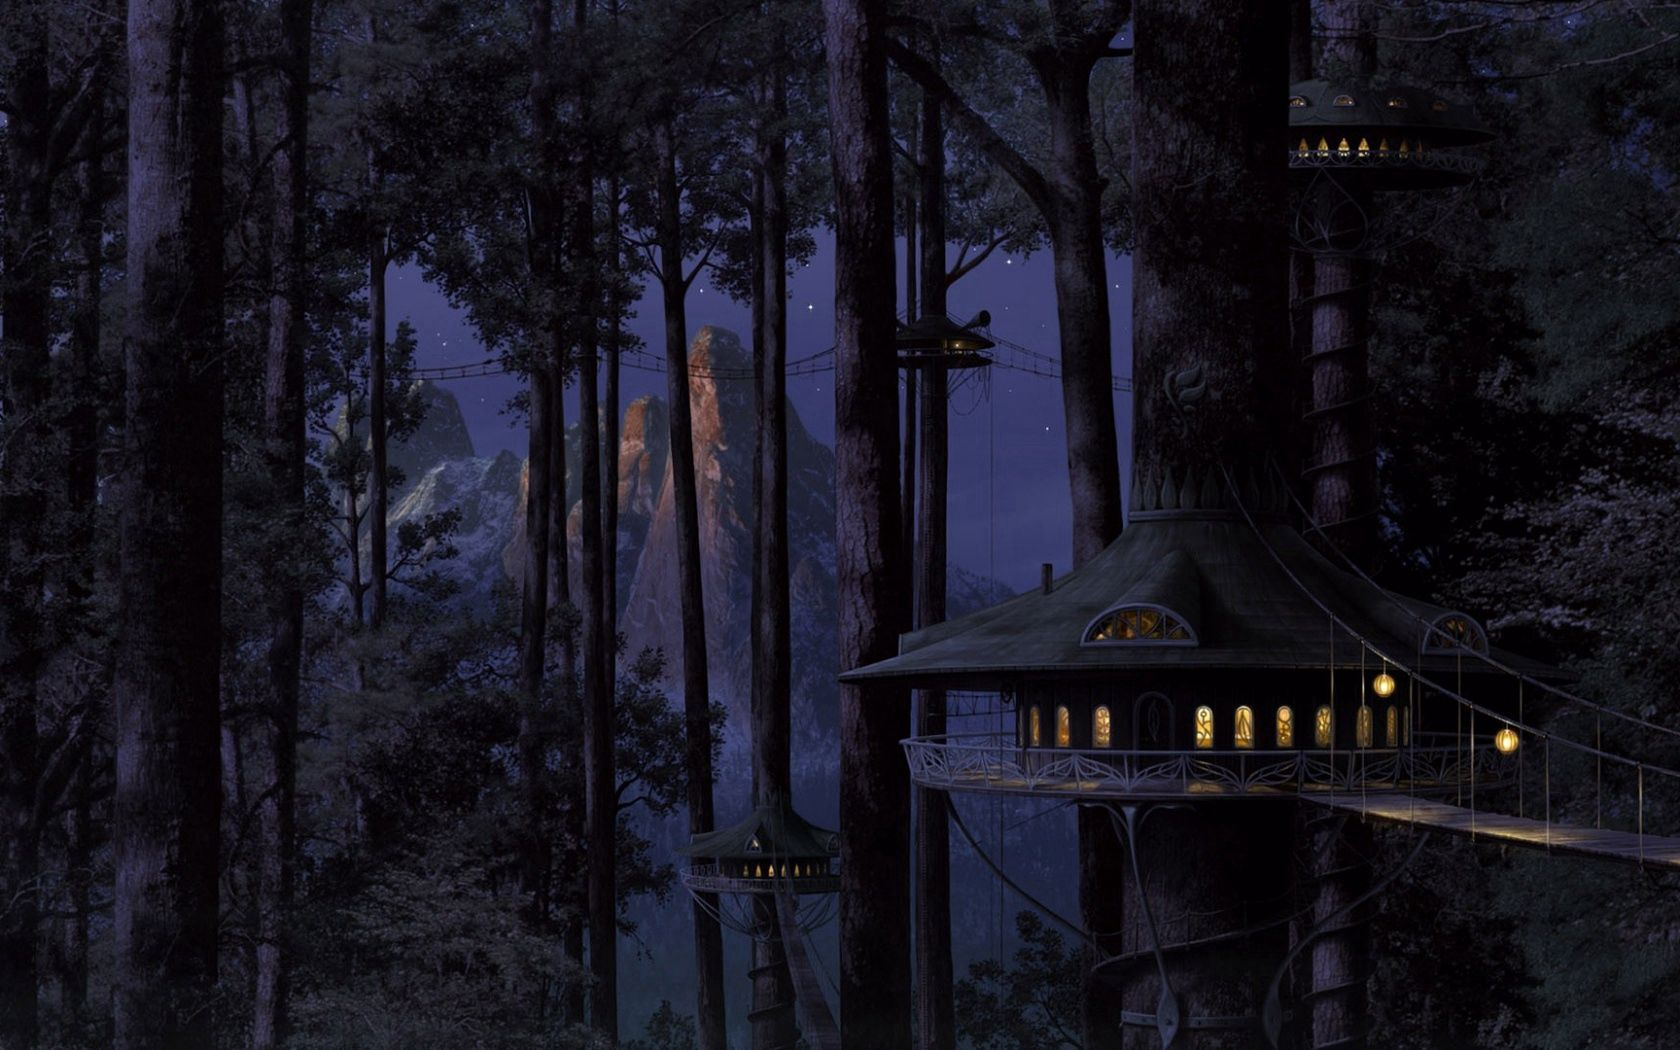 105567 download wallpaper Fantasy, House, Wood, Tree, Shine, Light, Forest, Night screensavers and pictures for free